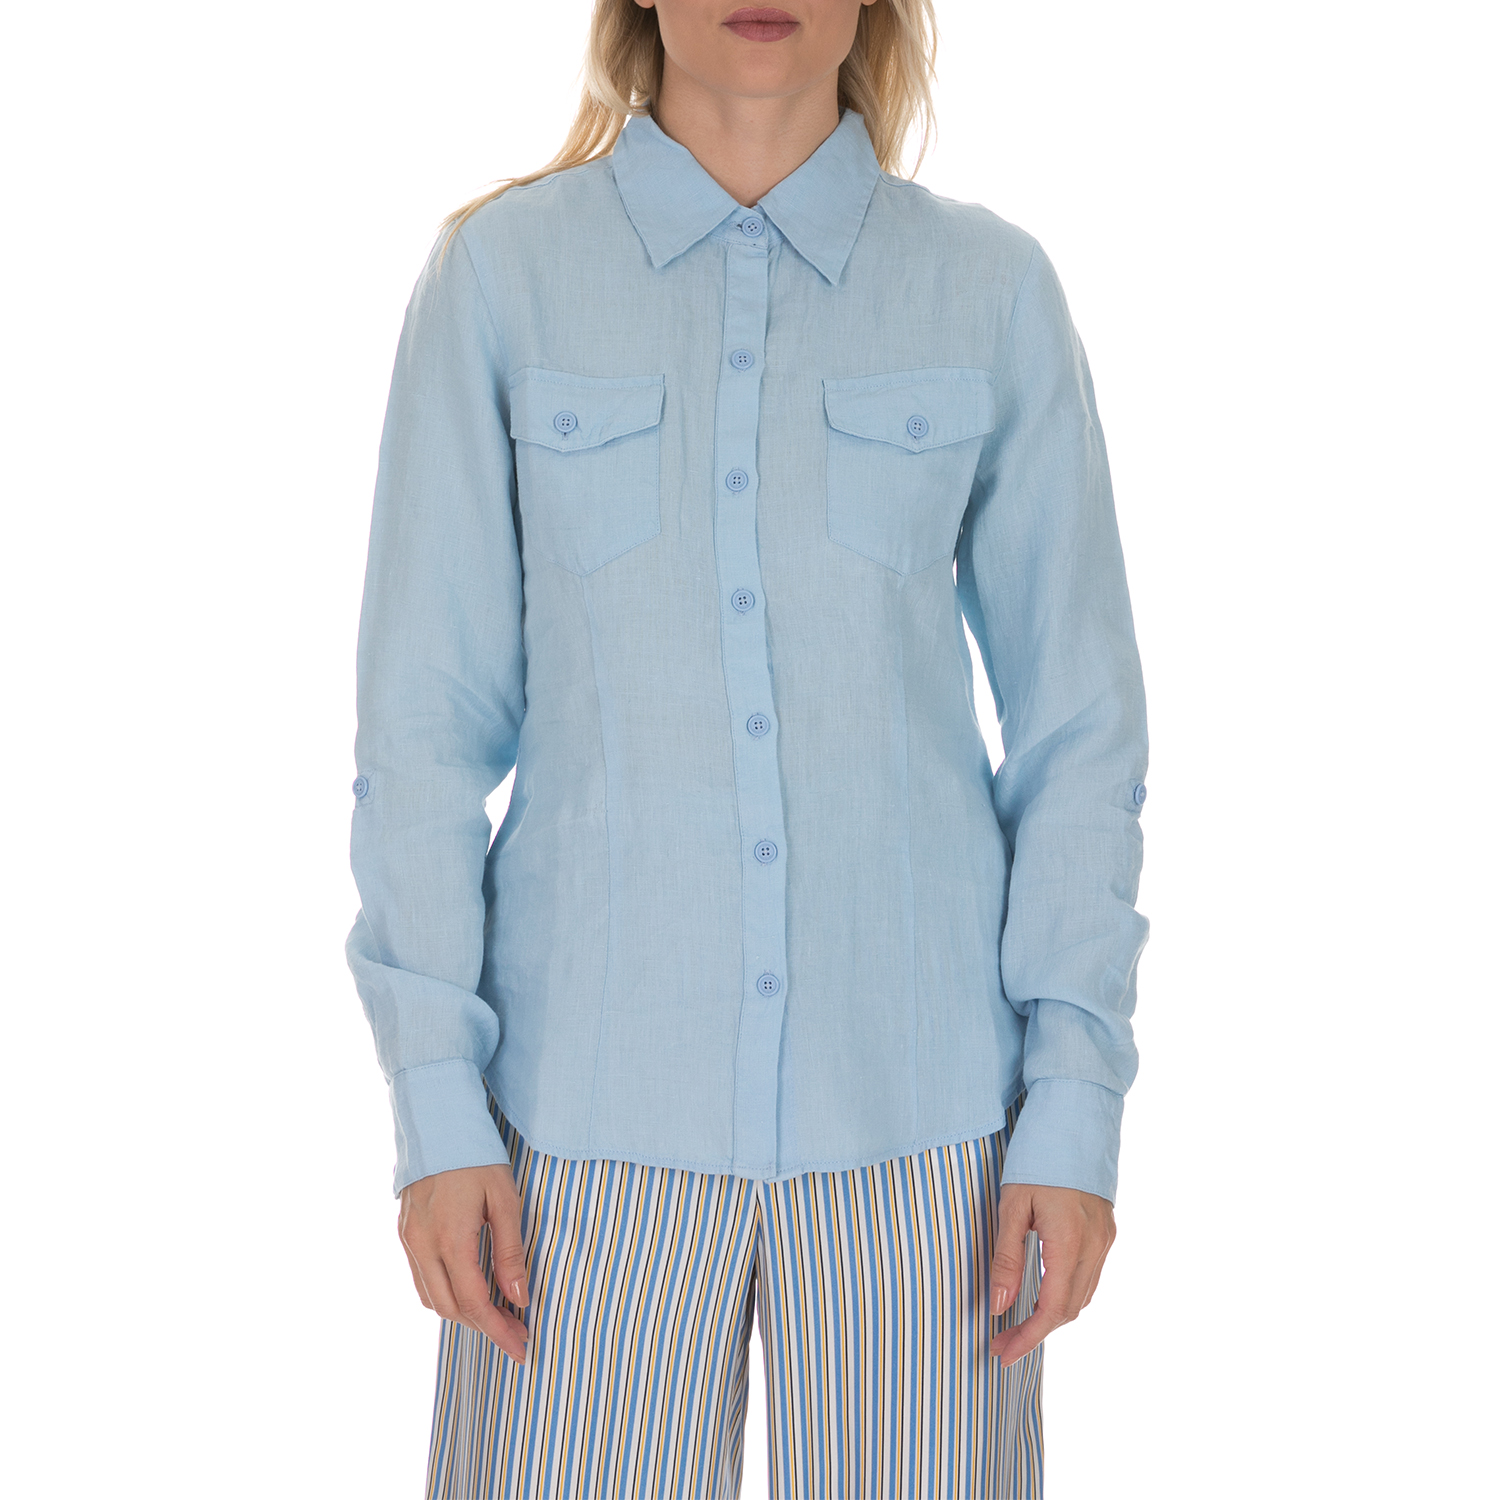 JUICY COUTURE - Γυναικείο πουκάμισο JUICY COUTURE WASHED LIN...